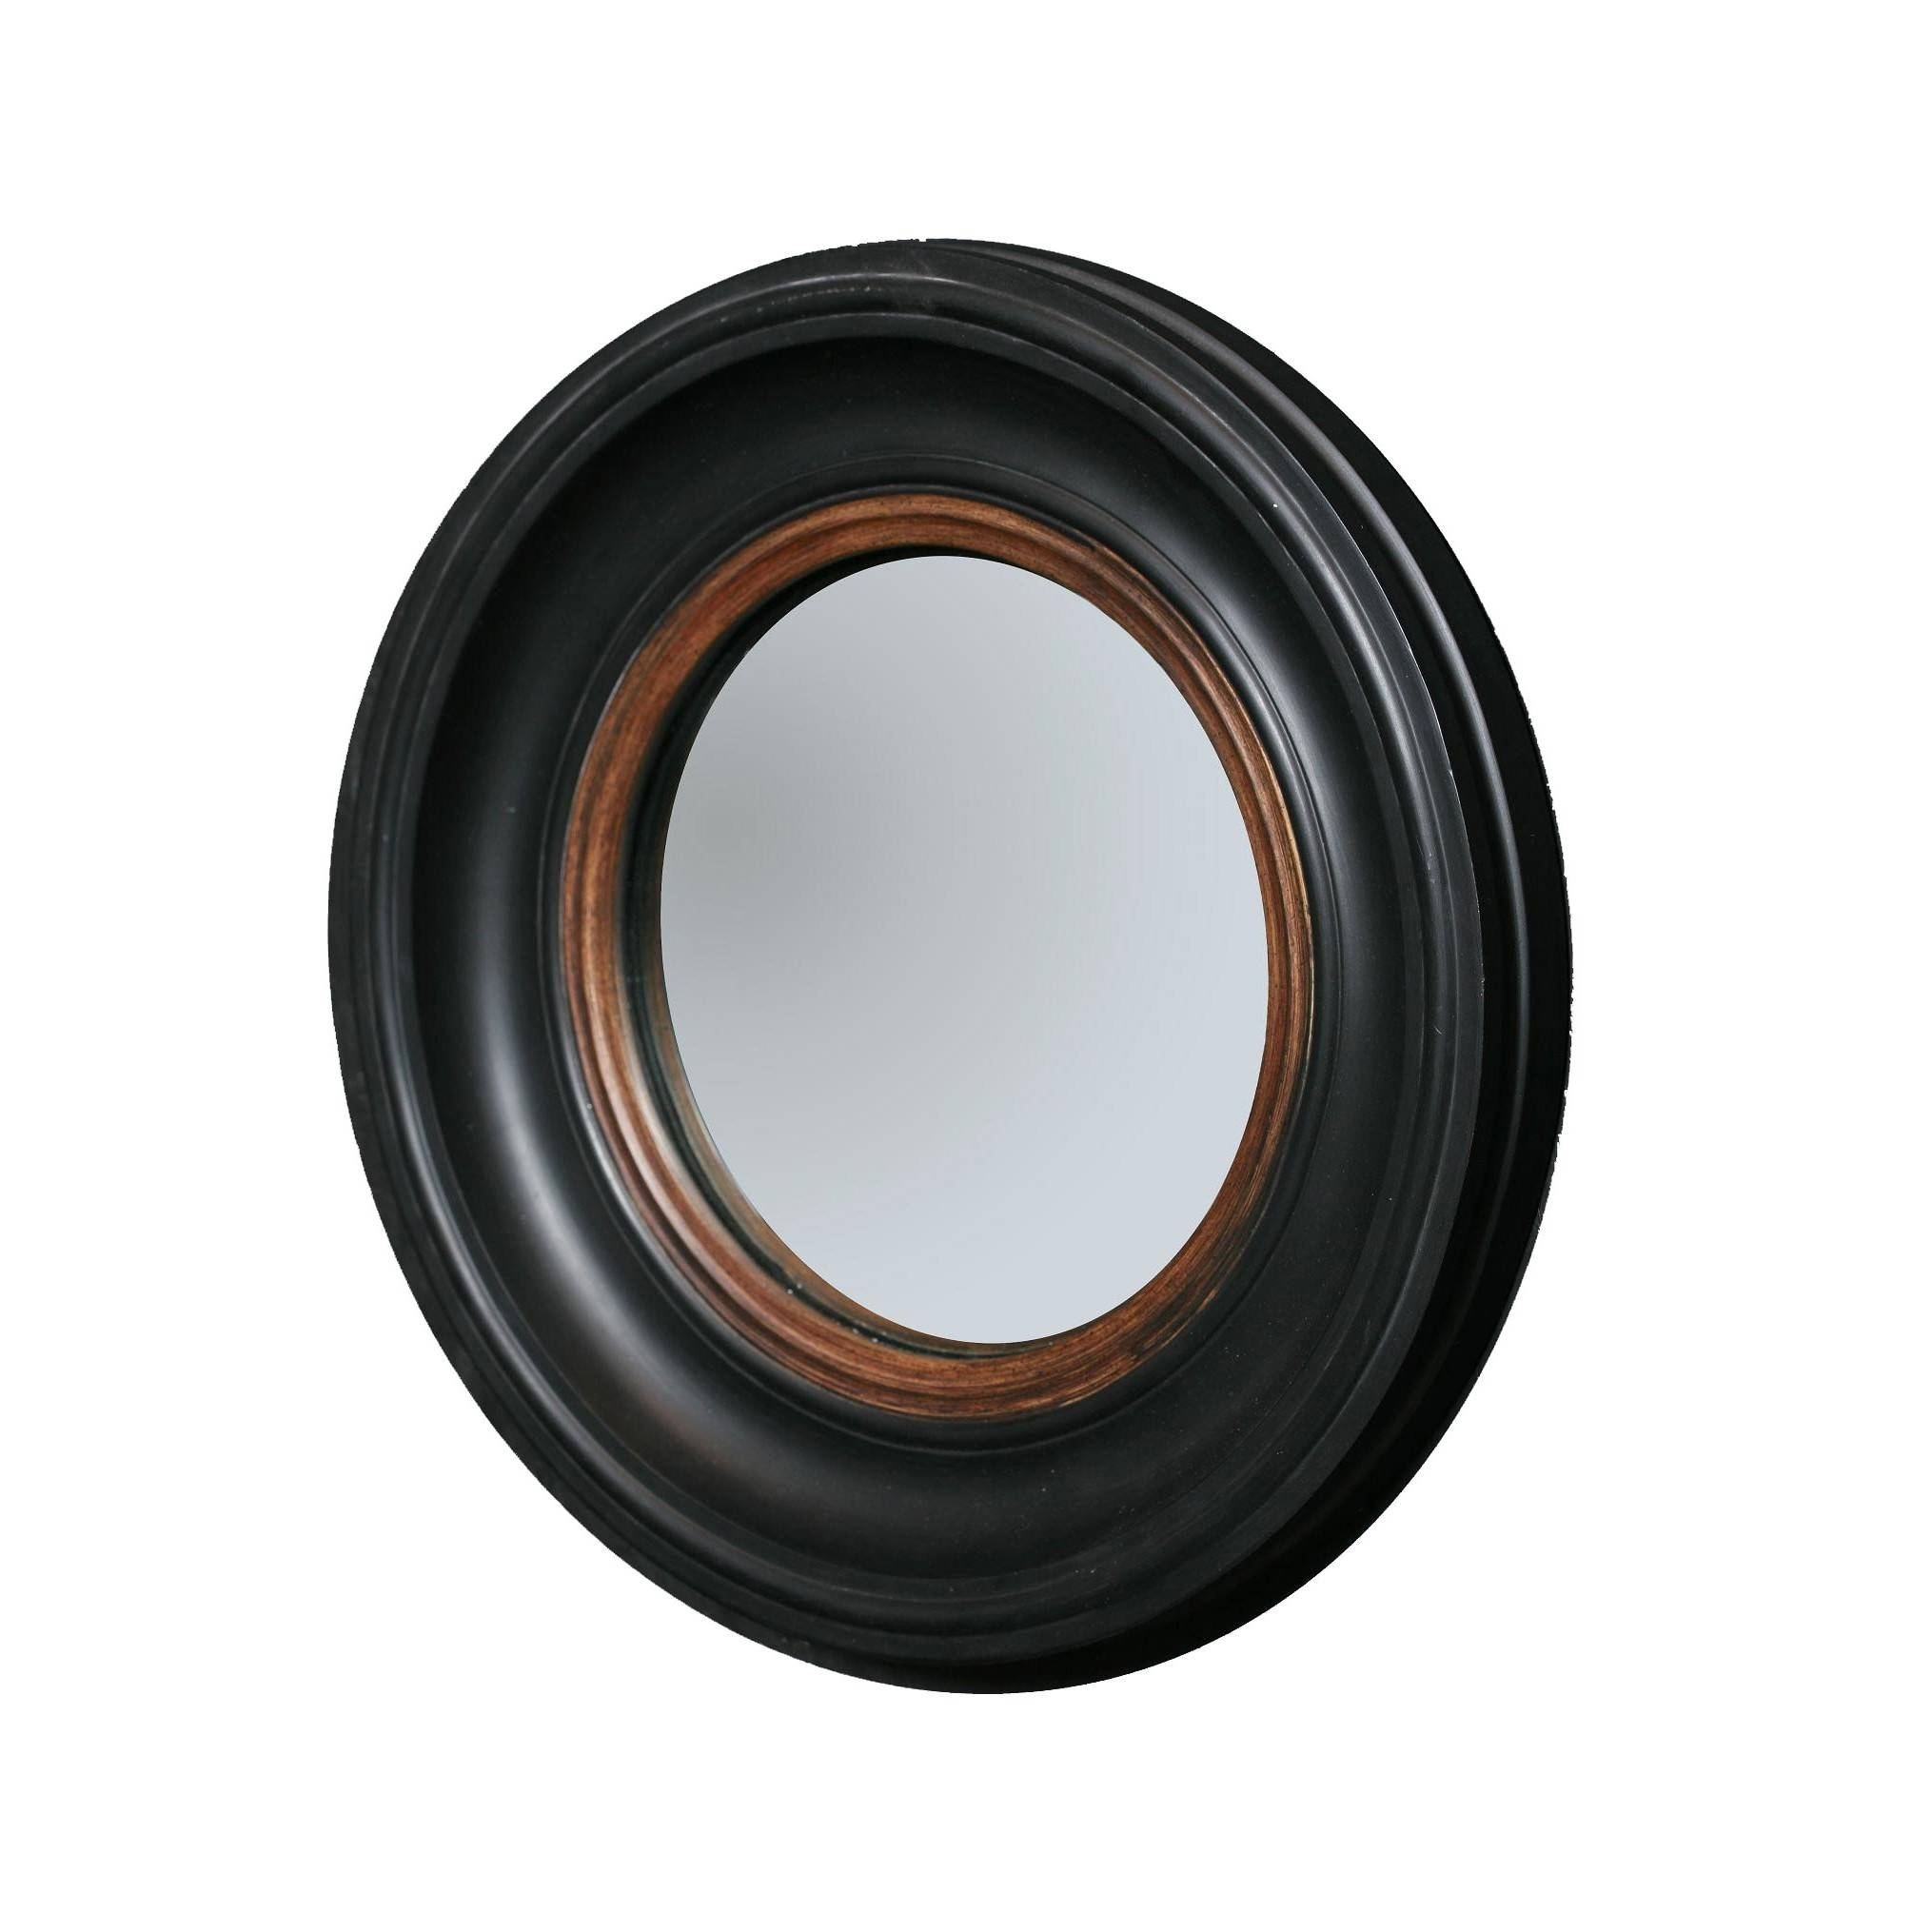 Porthole Mirror In Black And Gold - Small throughout Black Convex Mirrors (Image 14 of 25)